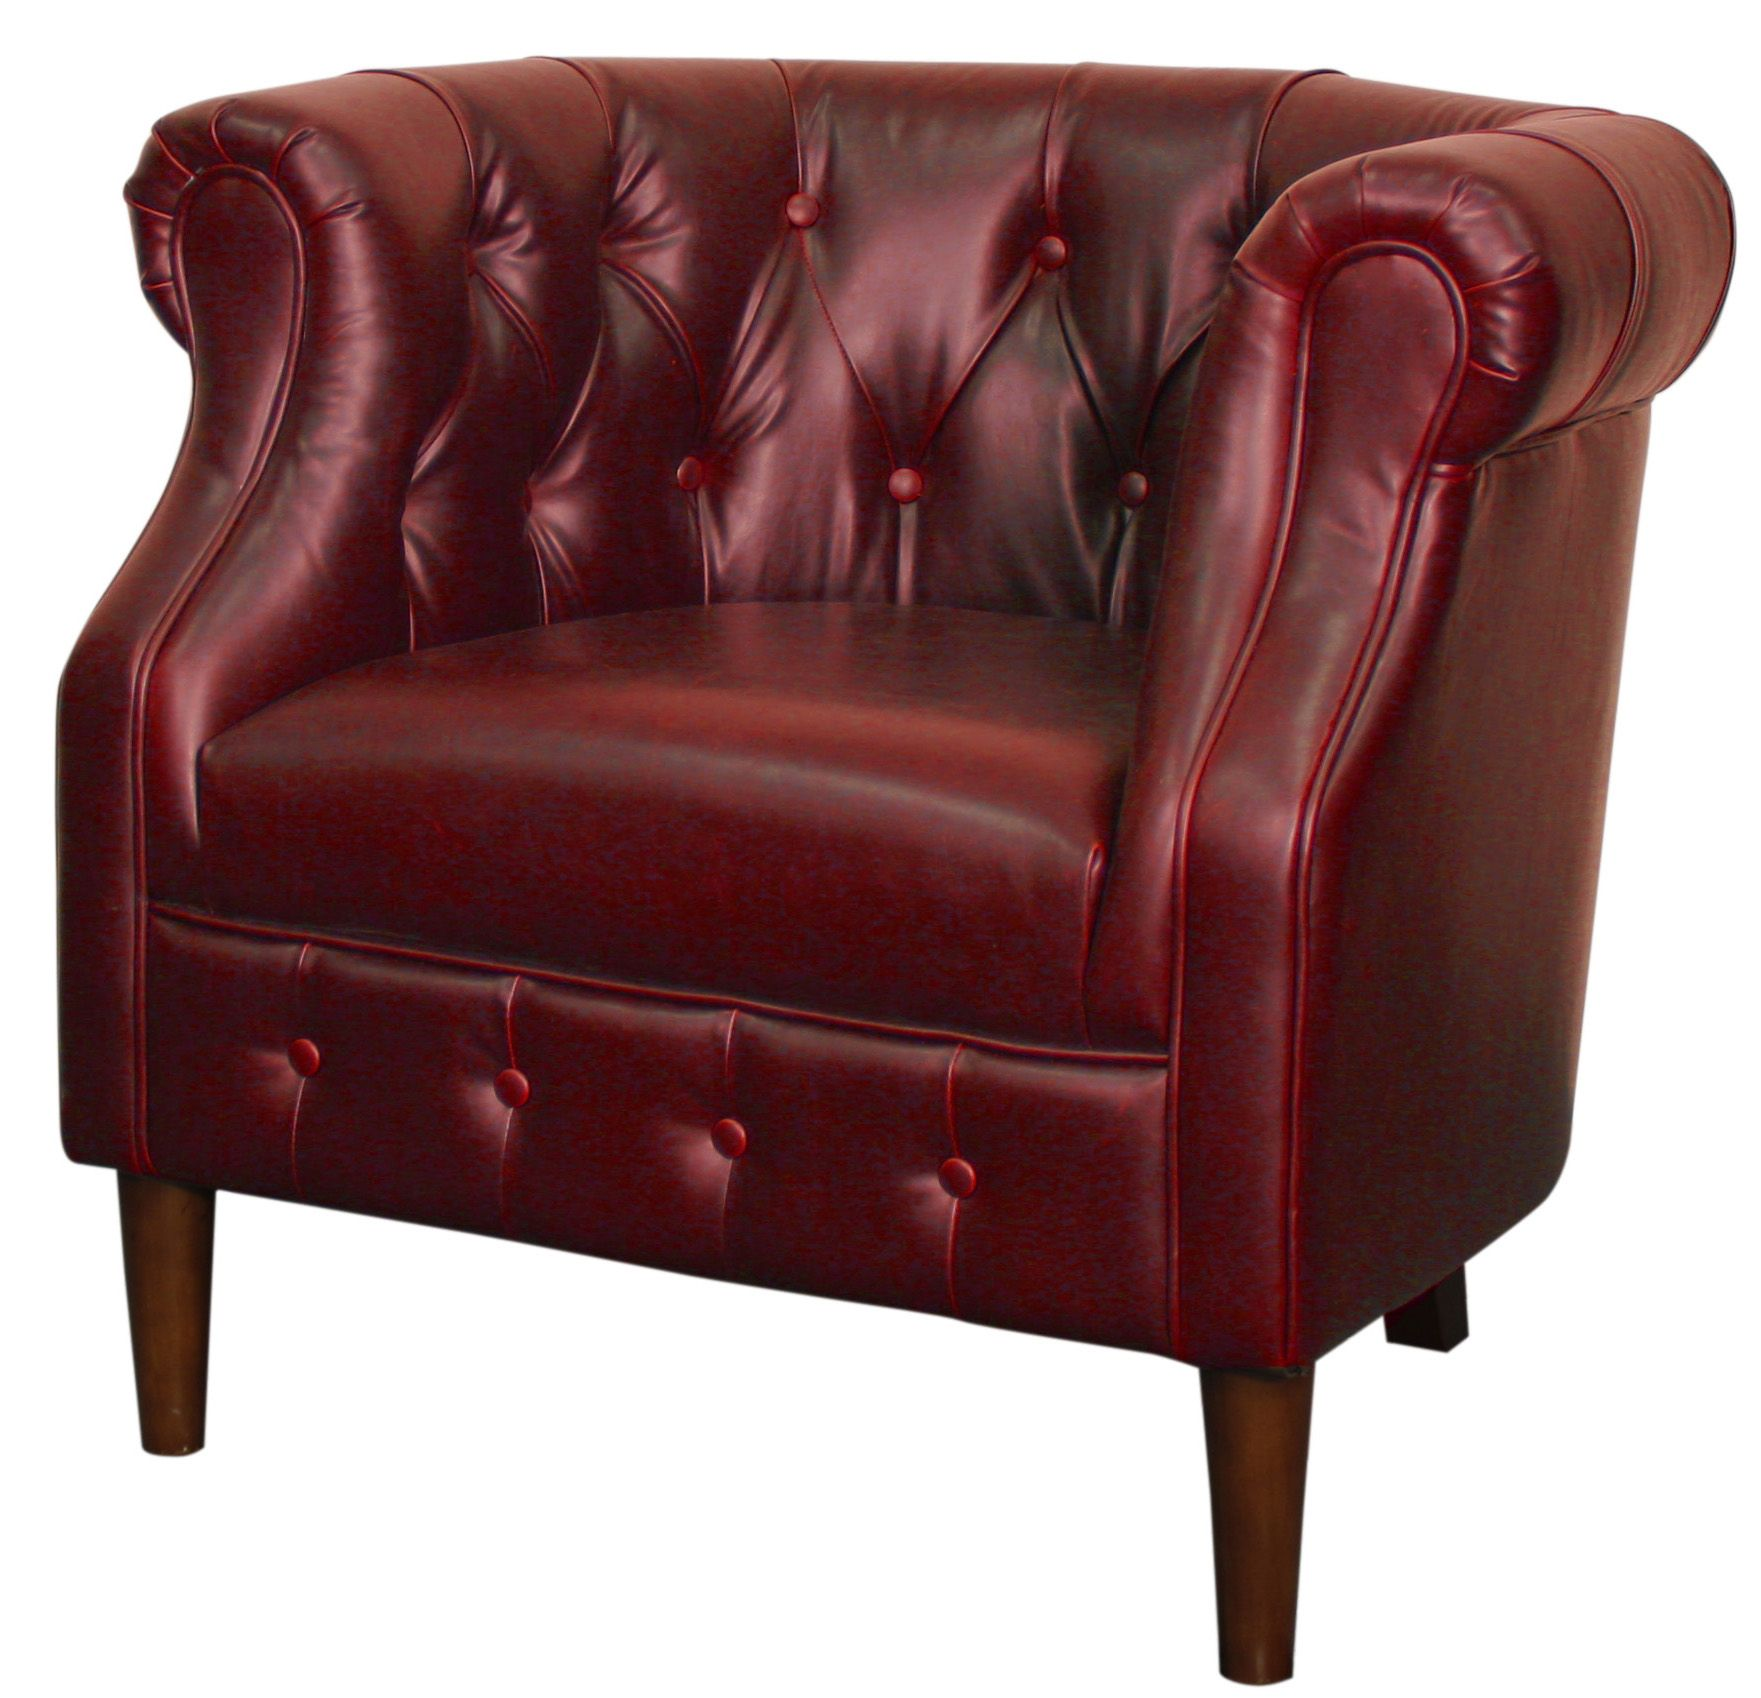 Nice Luna Bonded Leather Tufted Chair In Vintage Red. Constructed In Solid Birch  Wood With Brown Leg Color. Other Colors Include Vintage Dark Brown, ...